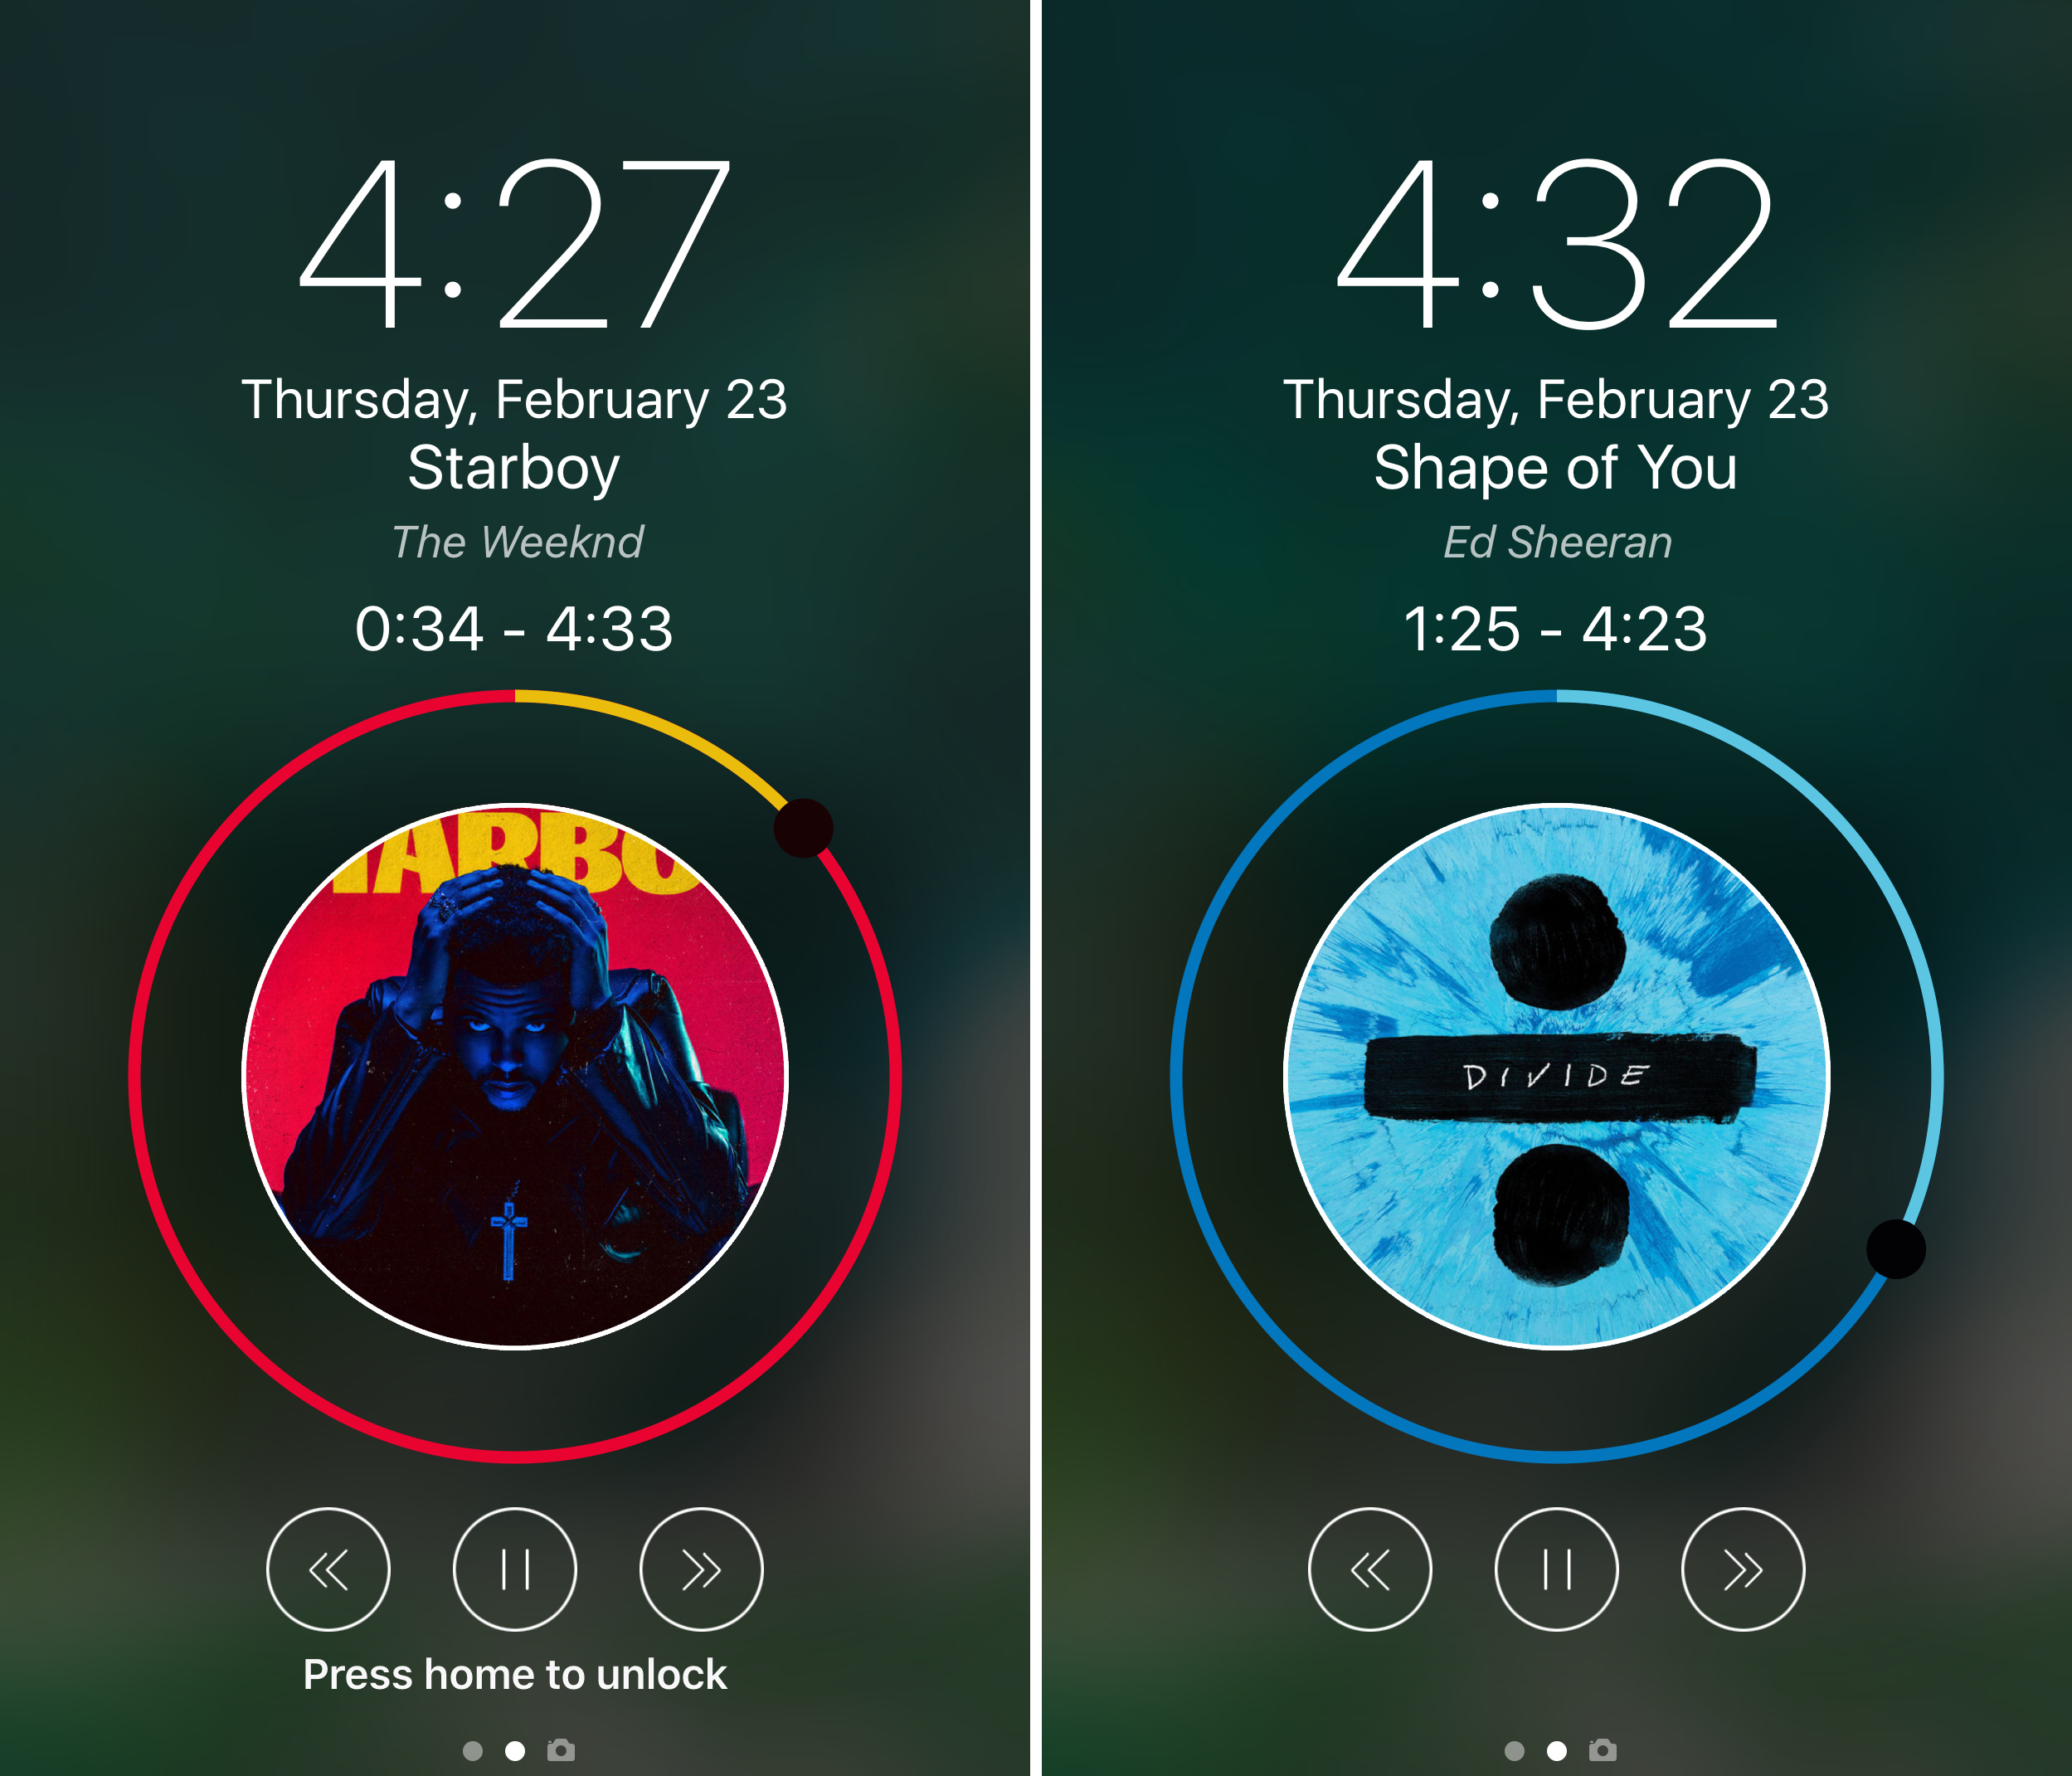 This tweak takes a circular approach on Lock screen music